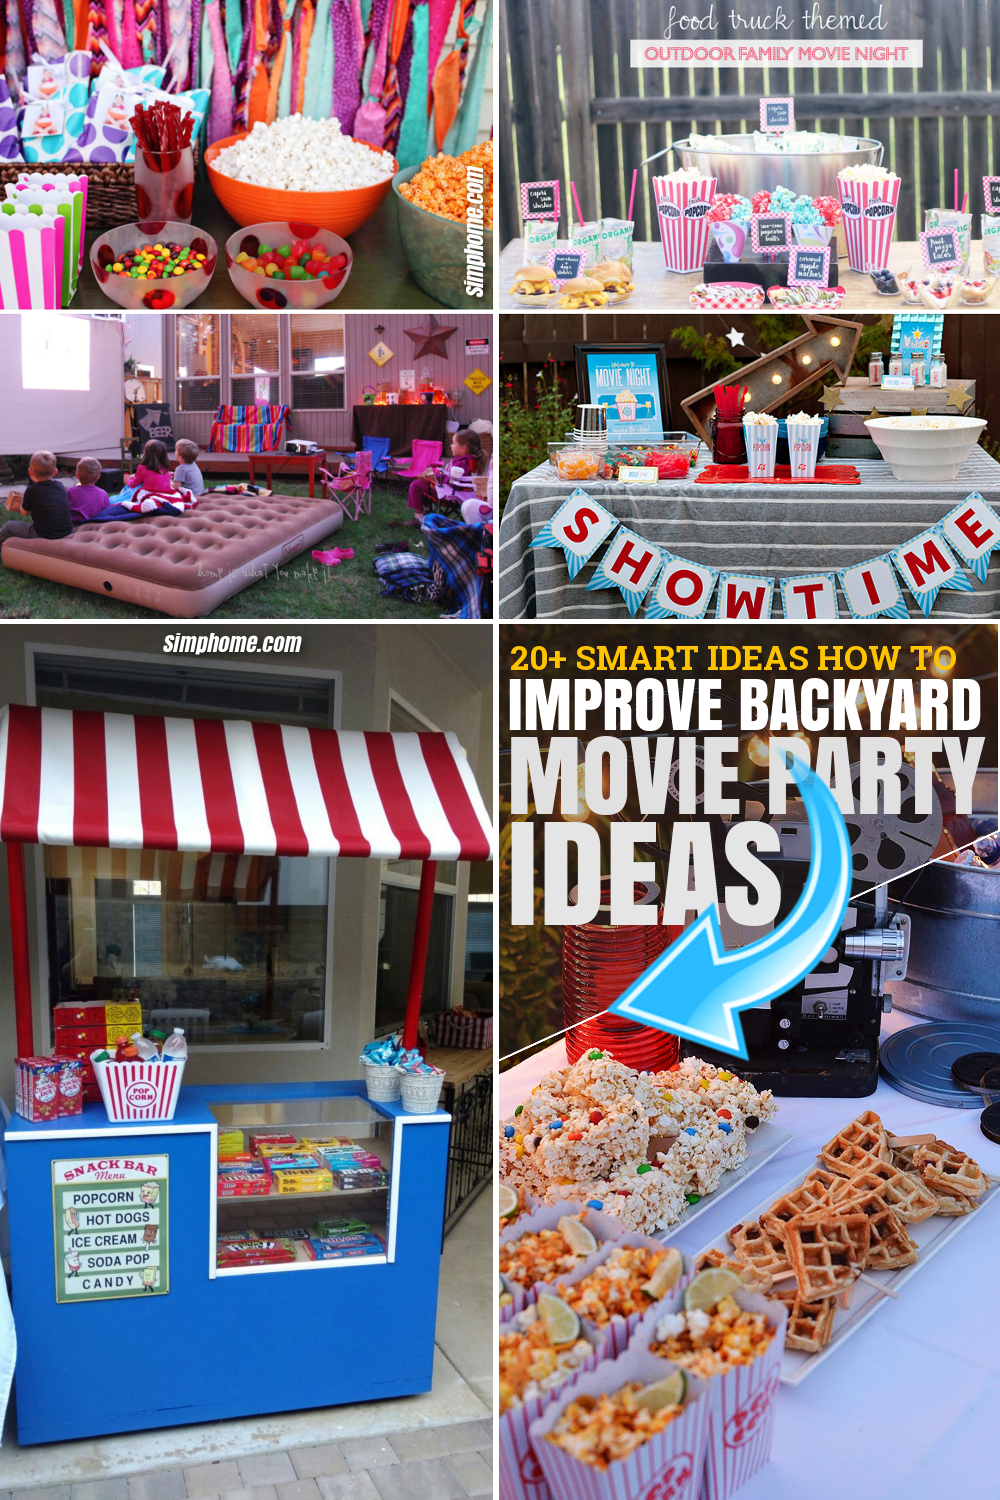 SIMPHOME.COM 10 How to Improve Backyard Movie Party Ideas Featured Image